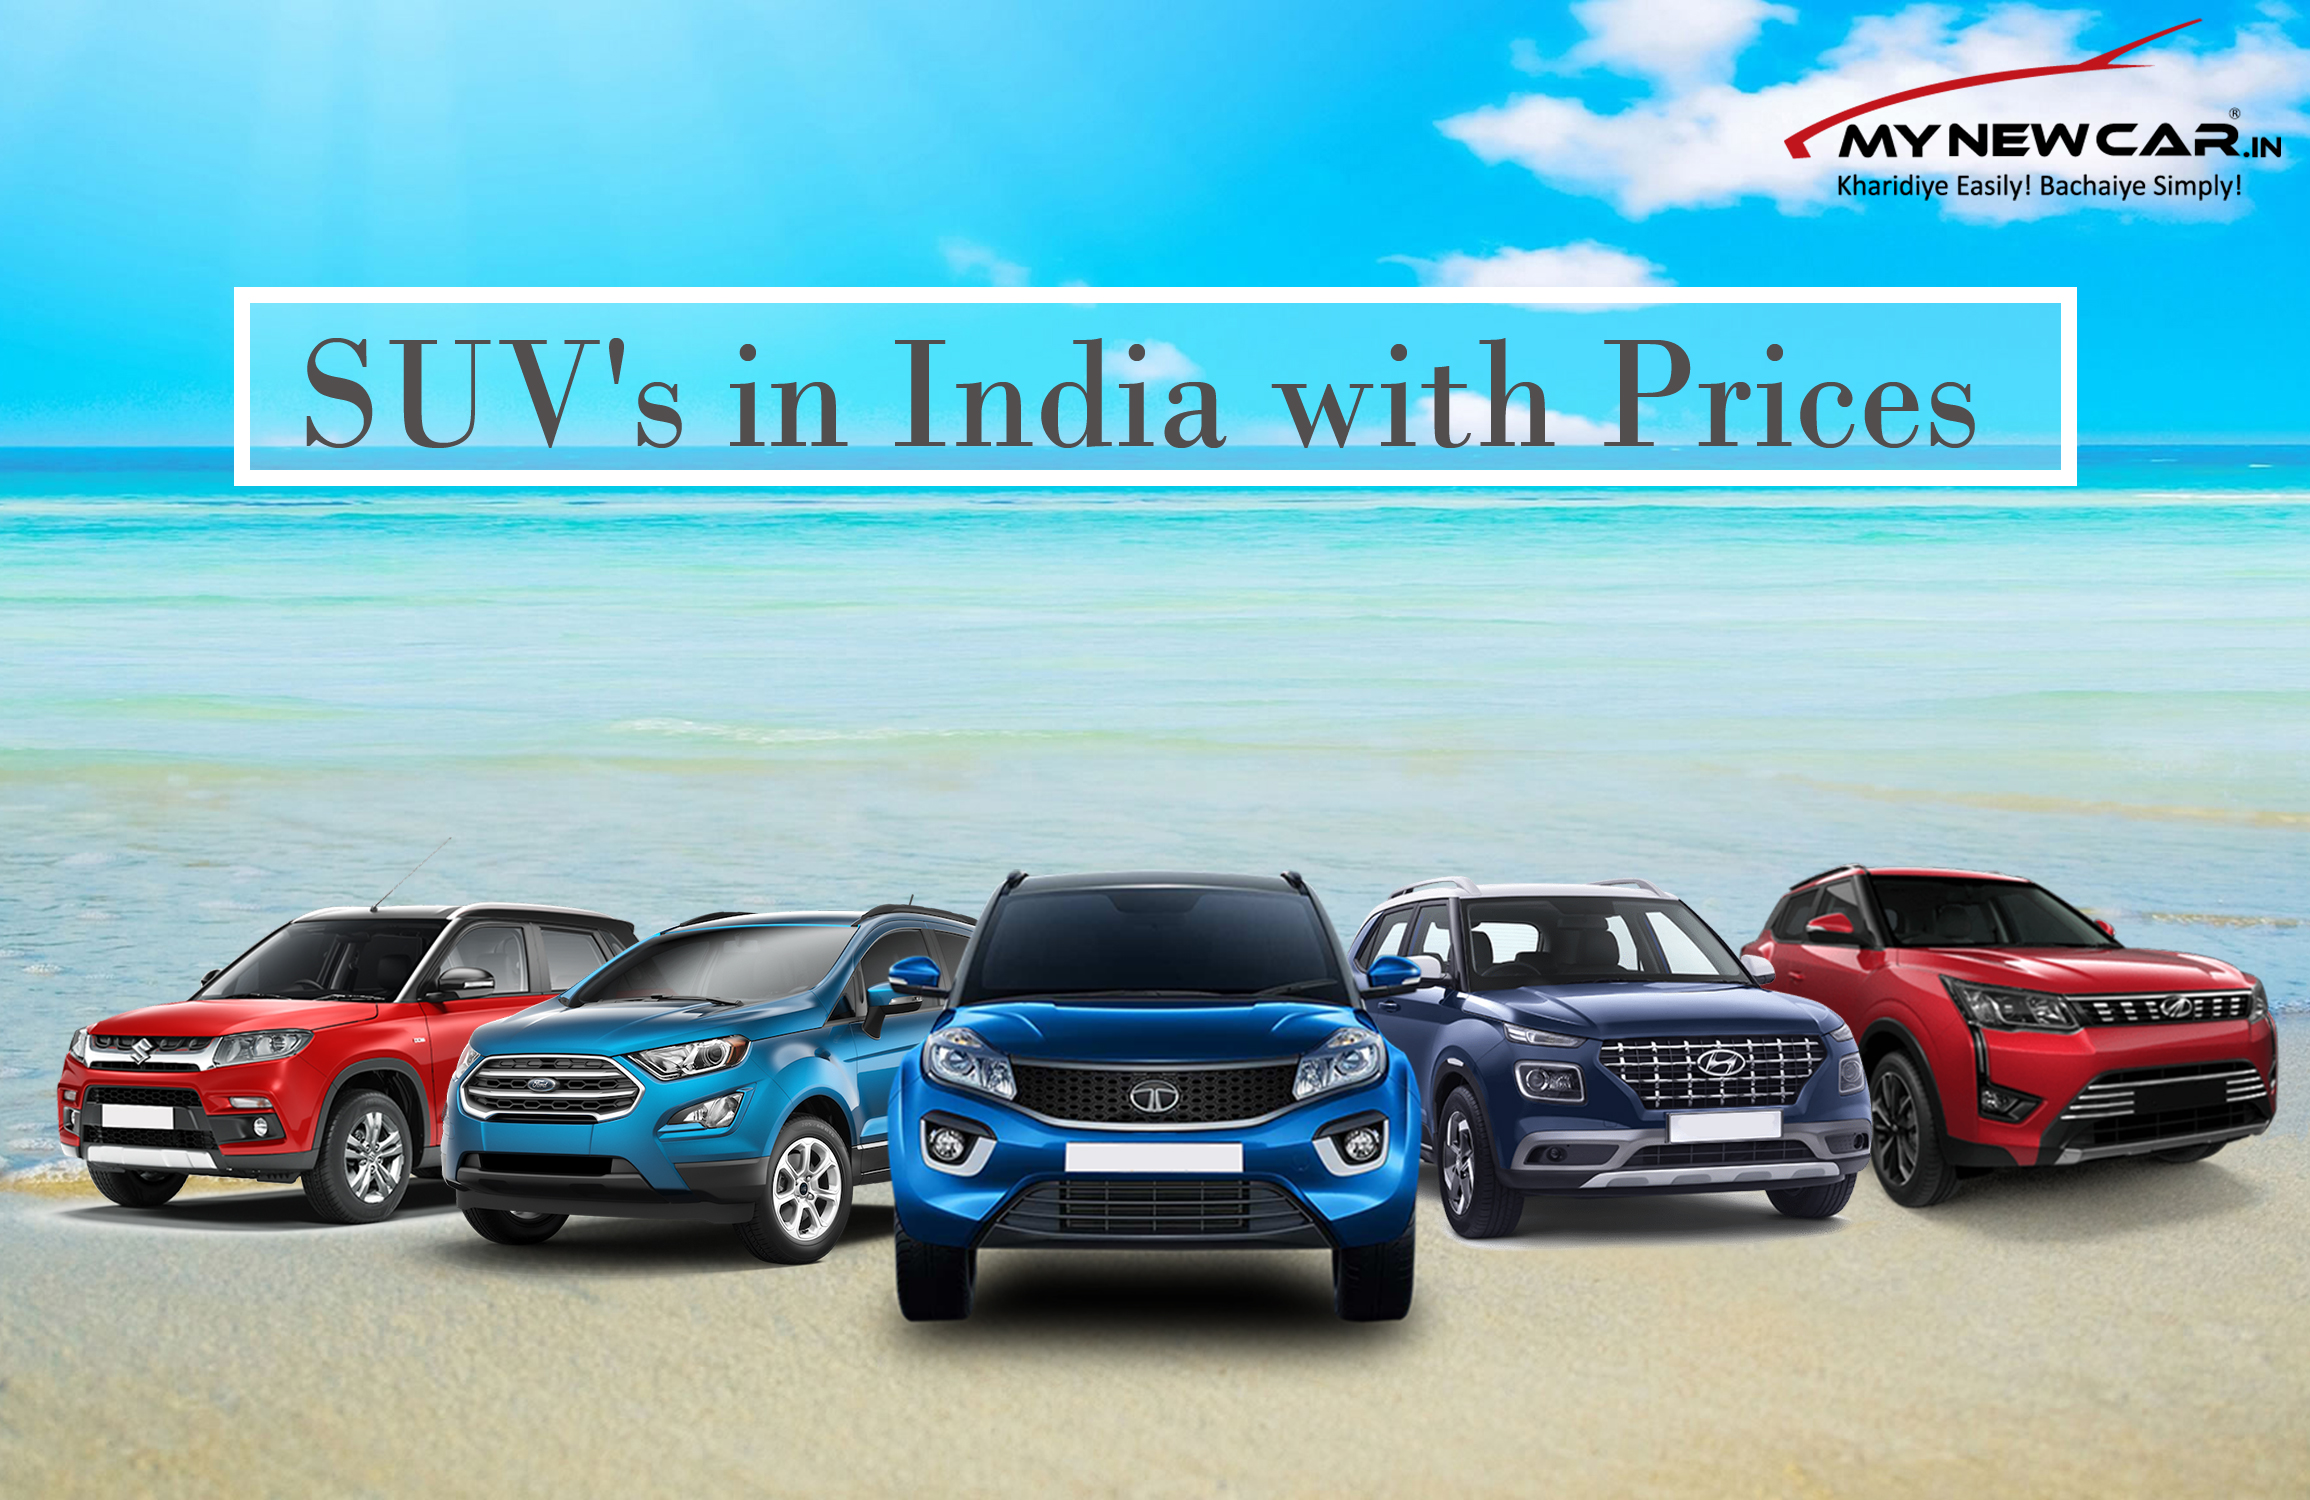 Detailed Comparison of Top SUV's in India with Prices